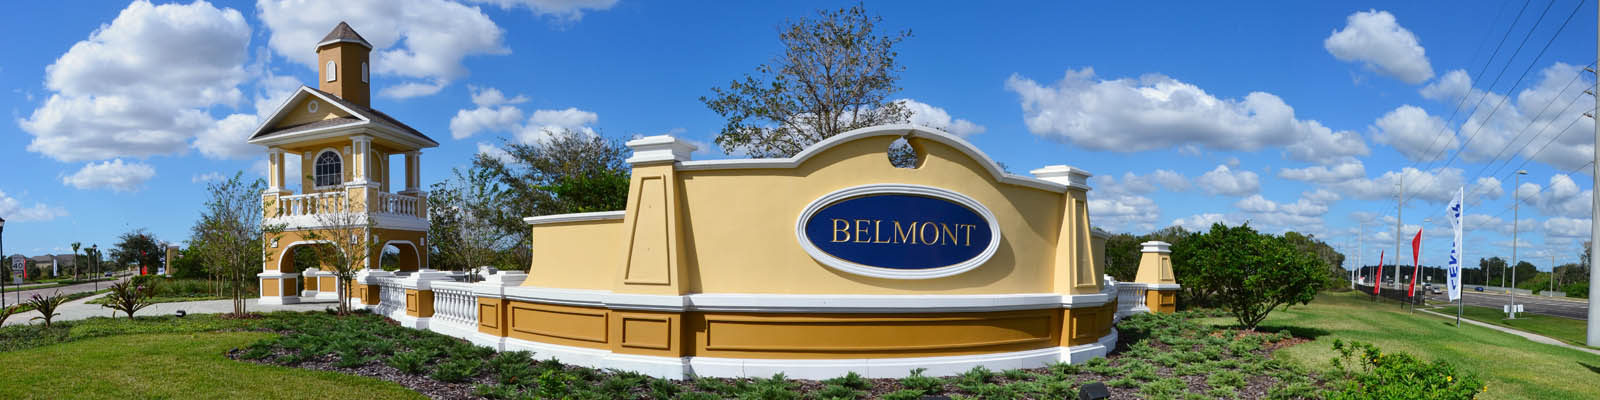 Belmont community, located in Hillsborough County, FL